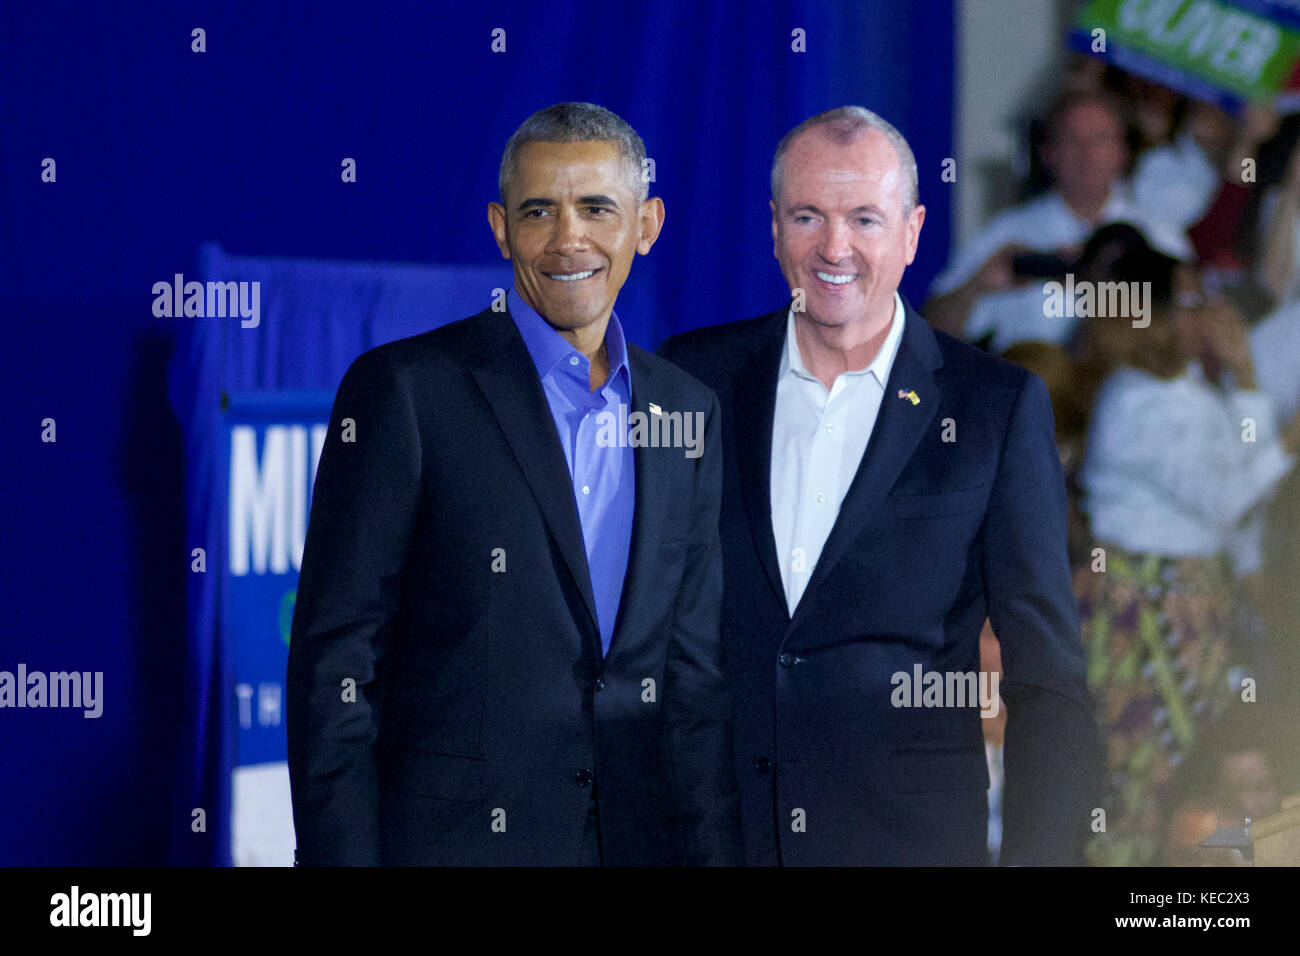 Newark, New Jersey, USA. 19th Oct, 2017. Former US president Barack Obama returns on the campaign trail at a rally Stock Photo